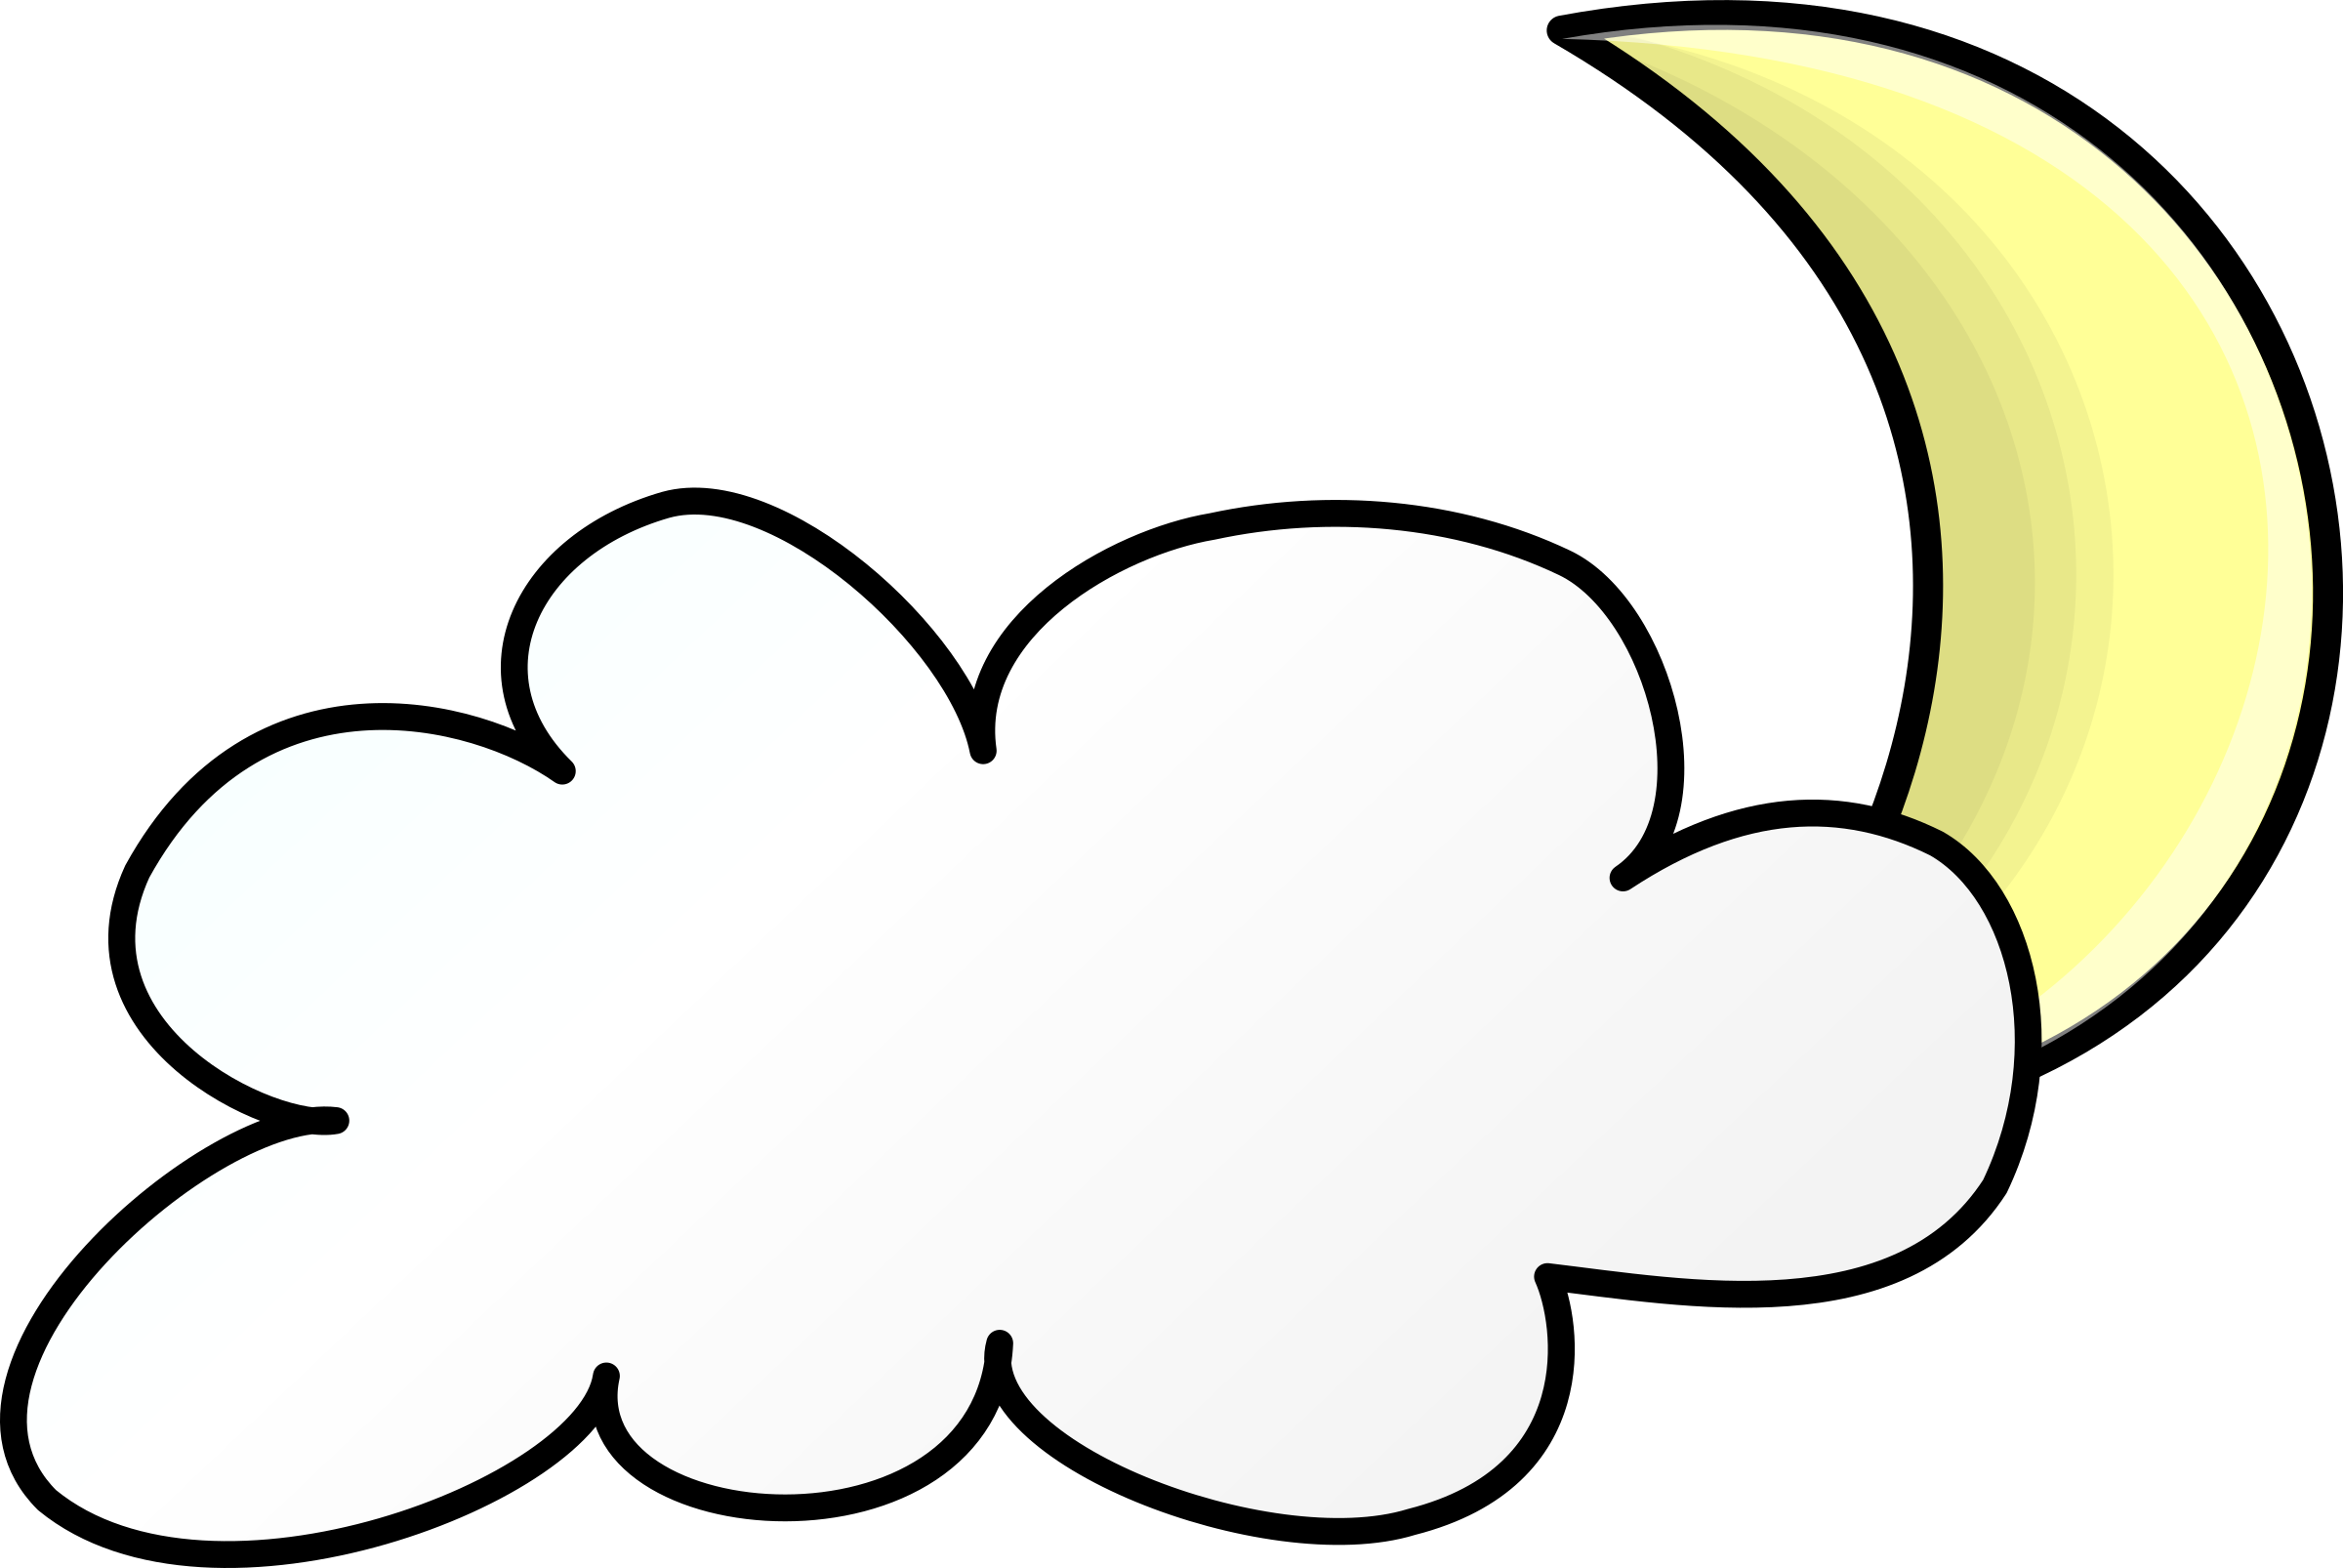 Weather Symbols: Cloudy Night by nicubunu